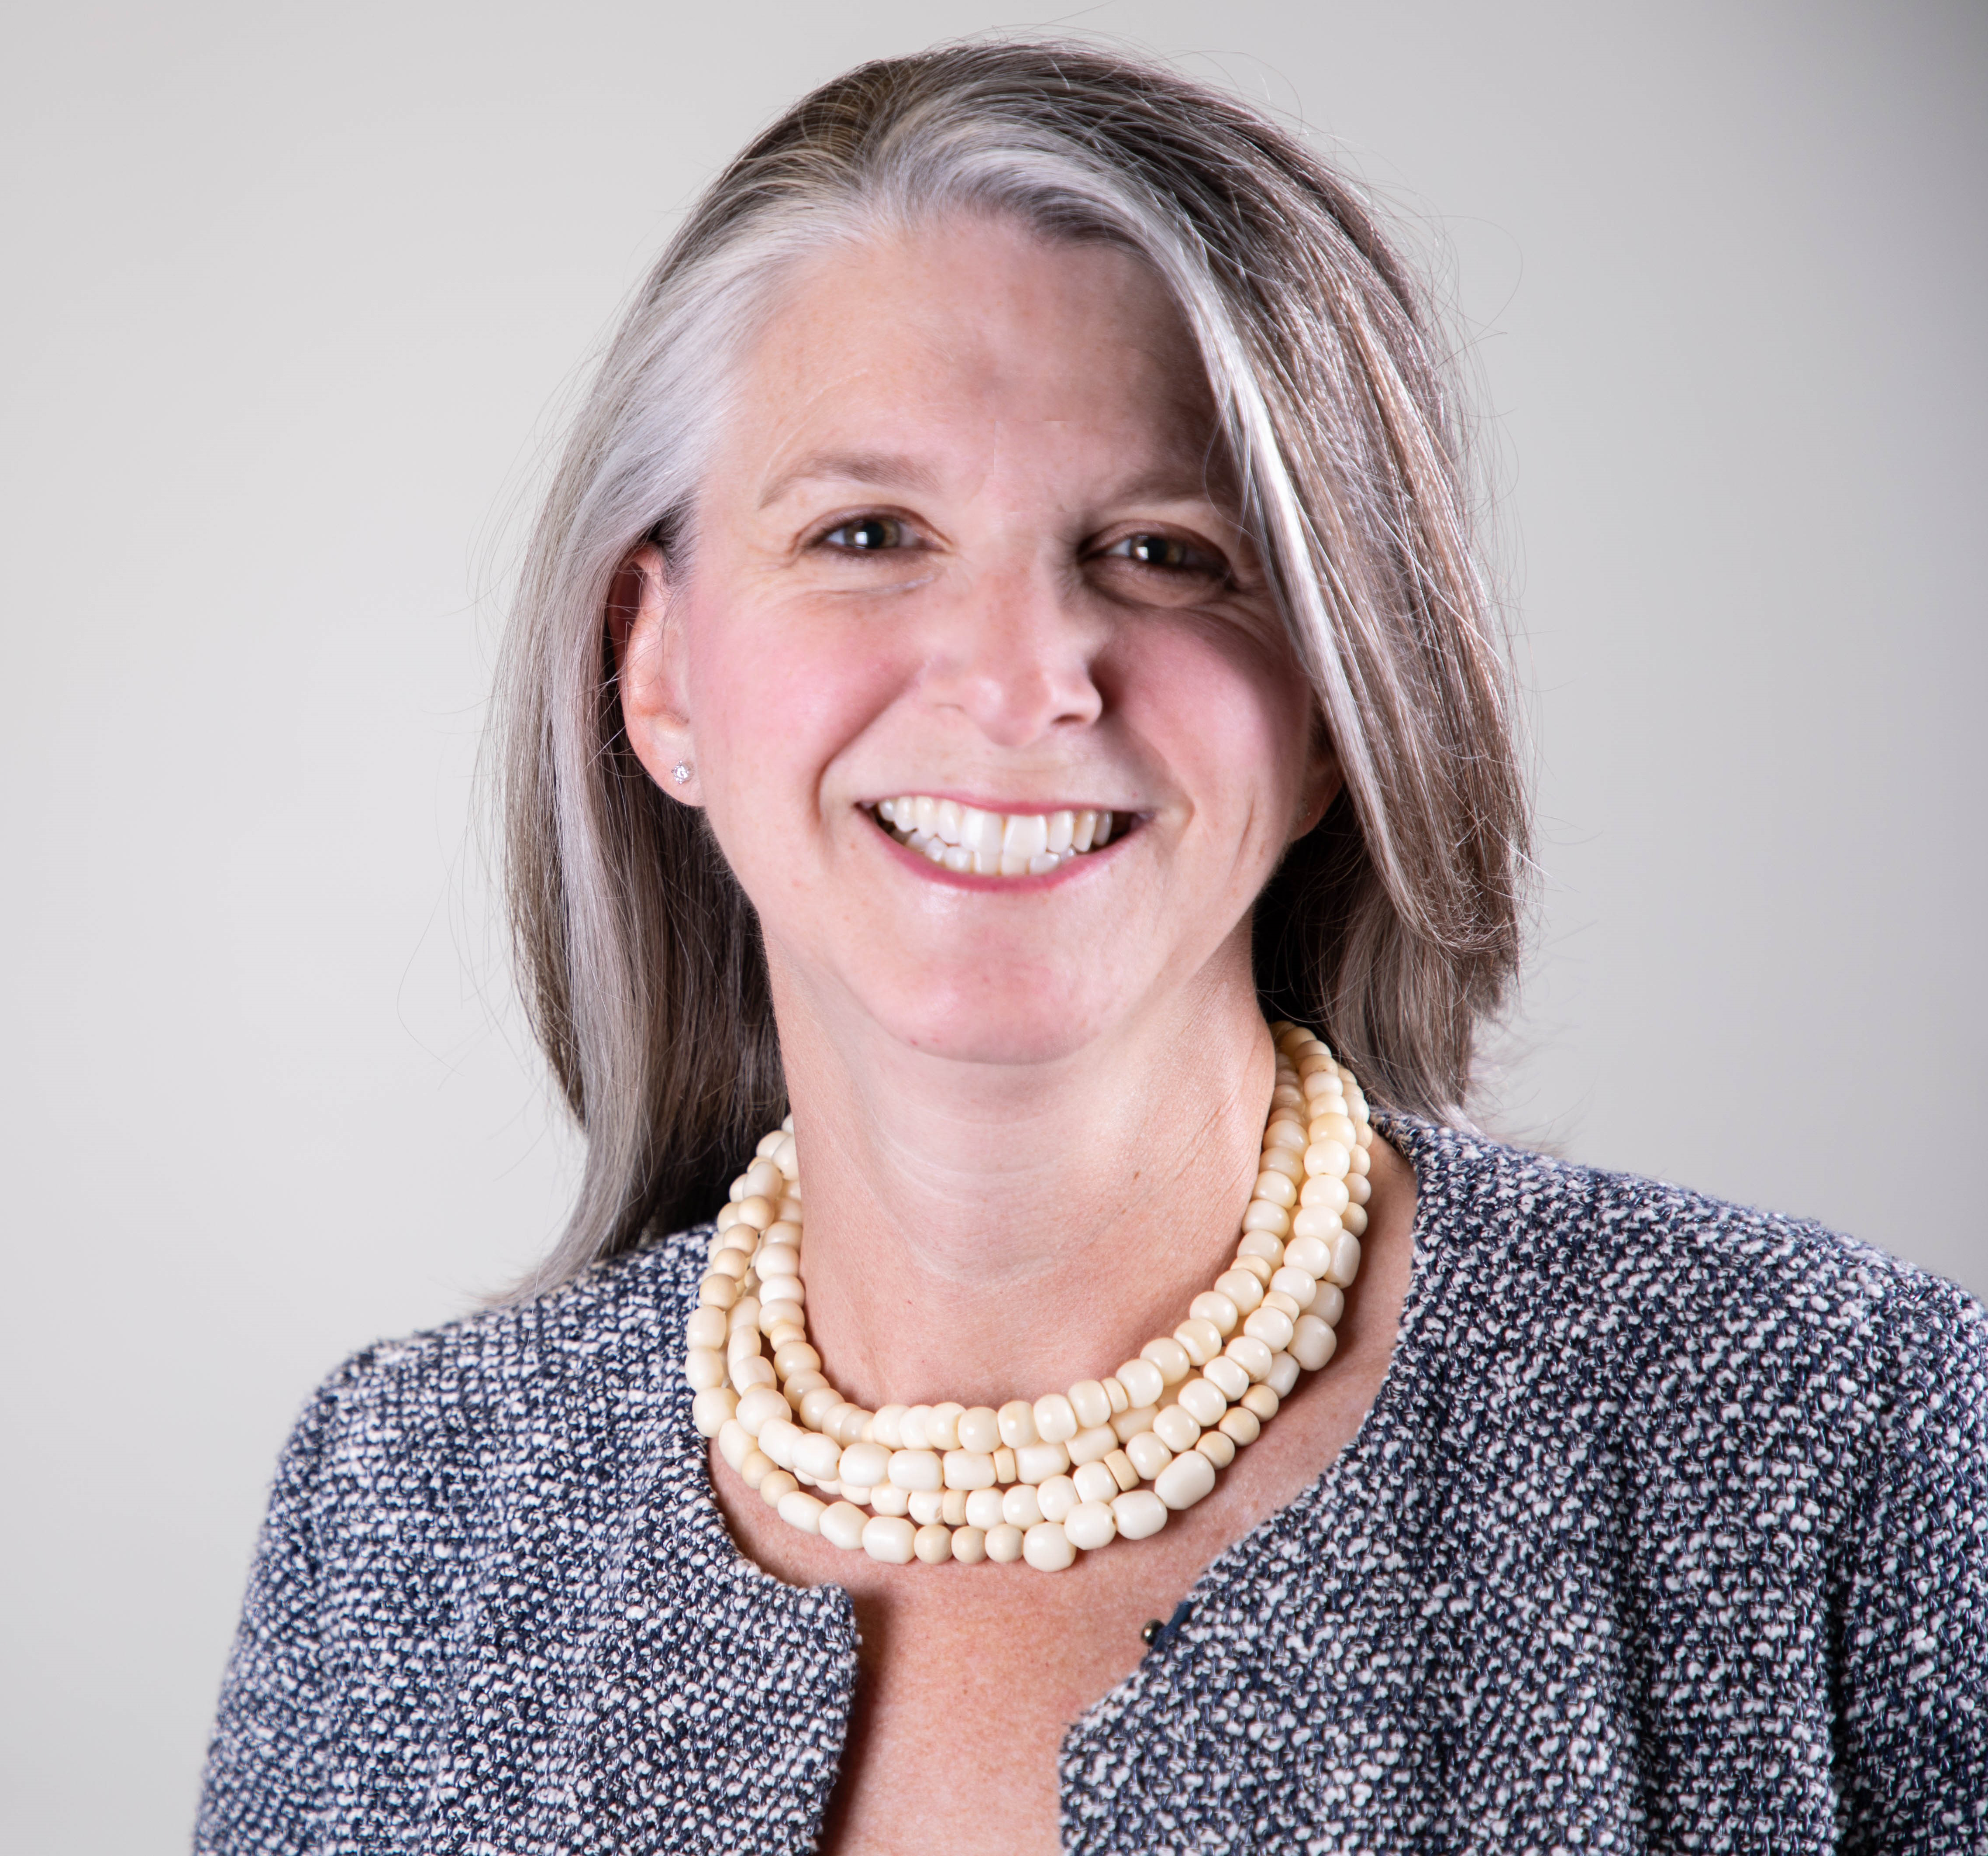 Kim Blass, Executive Director of External Affairs